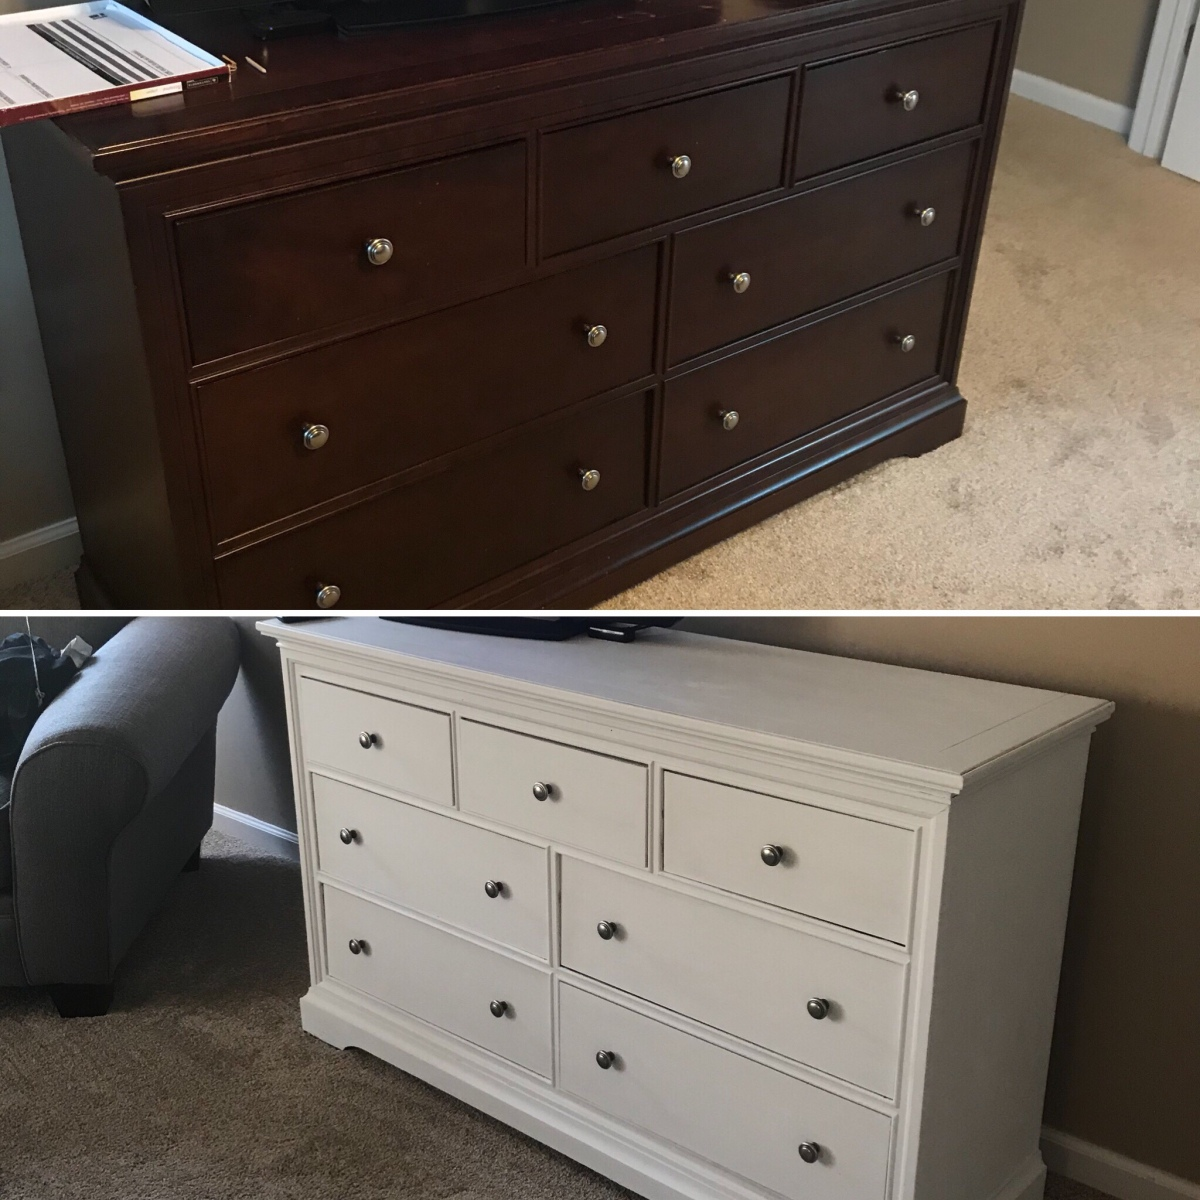 Furniture Rehab!